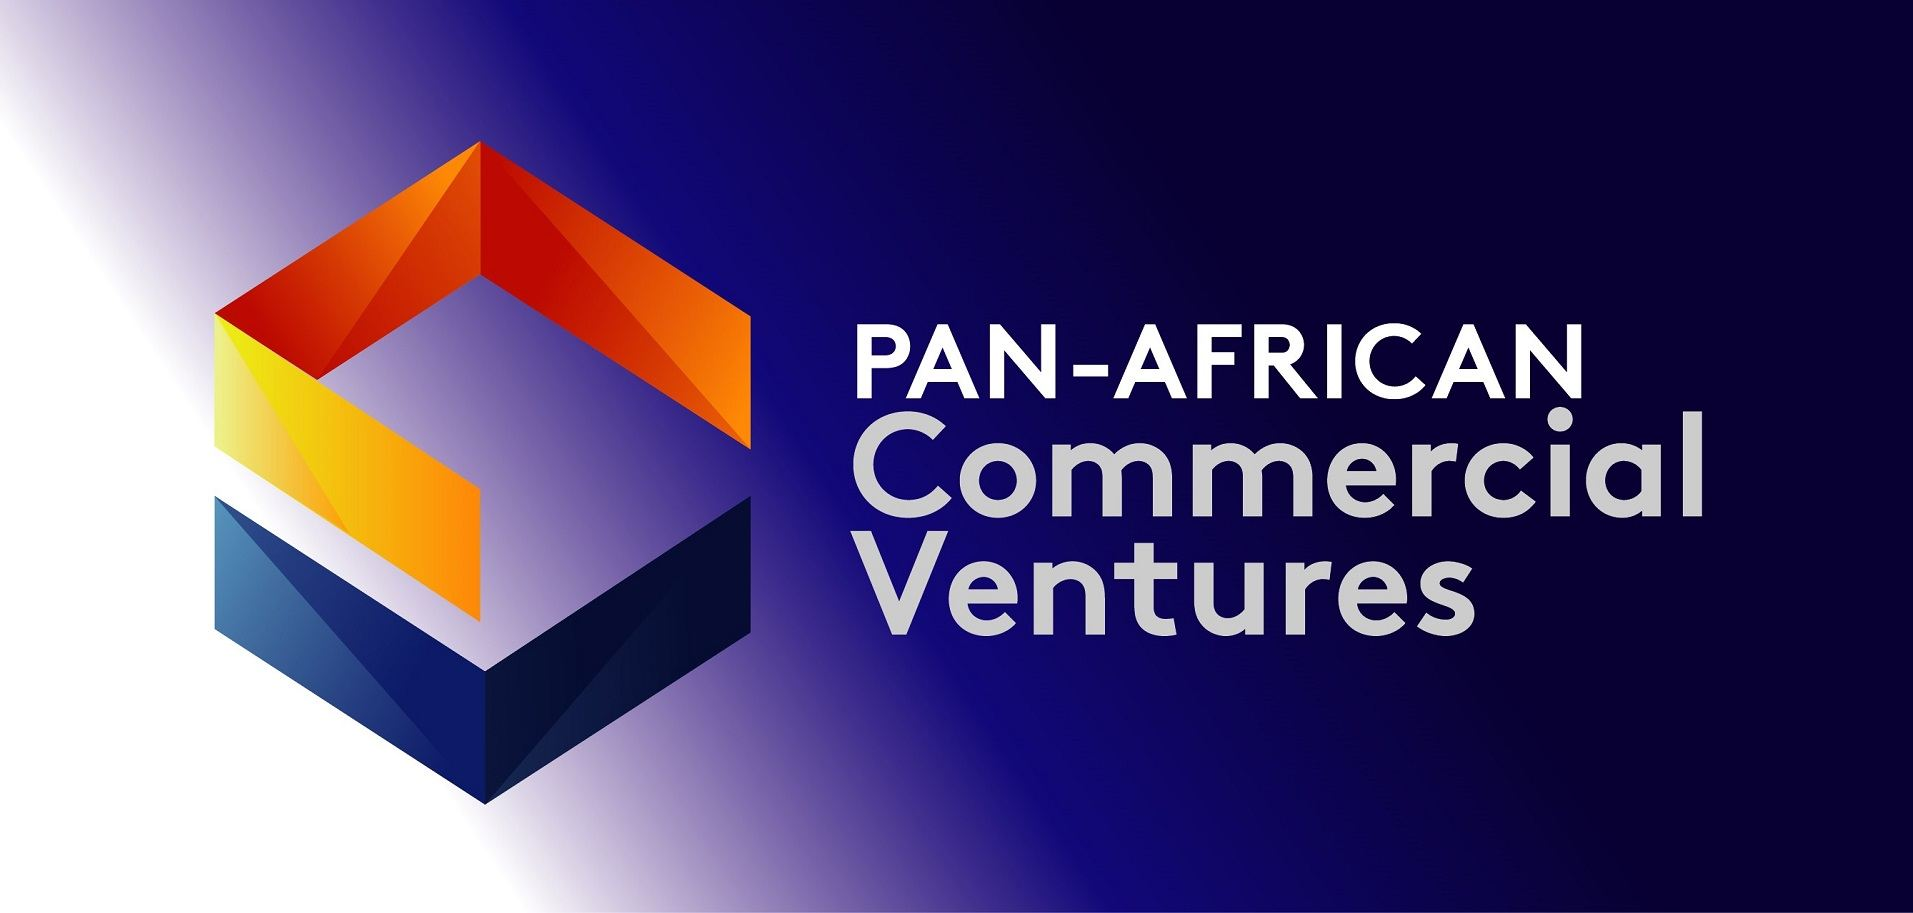 Pan-African Commercial Ventures acquires majority stake in C3 Shared Services